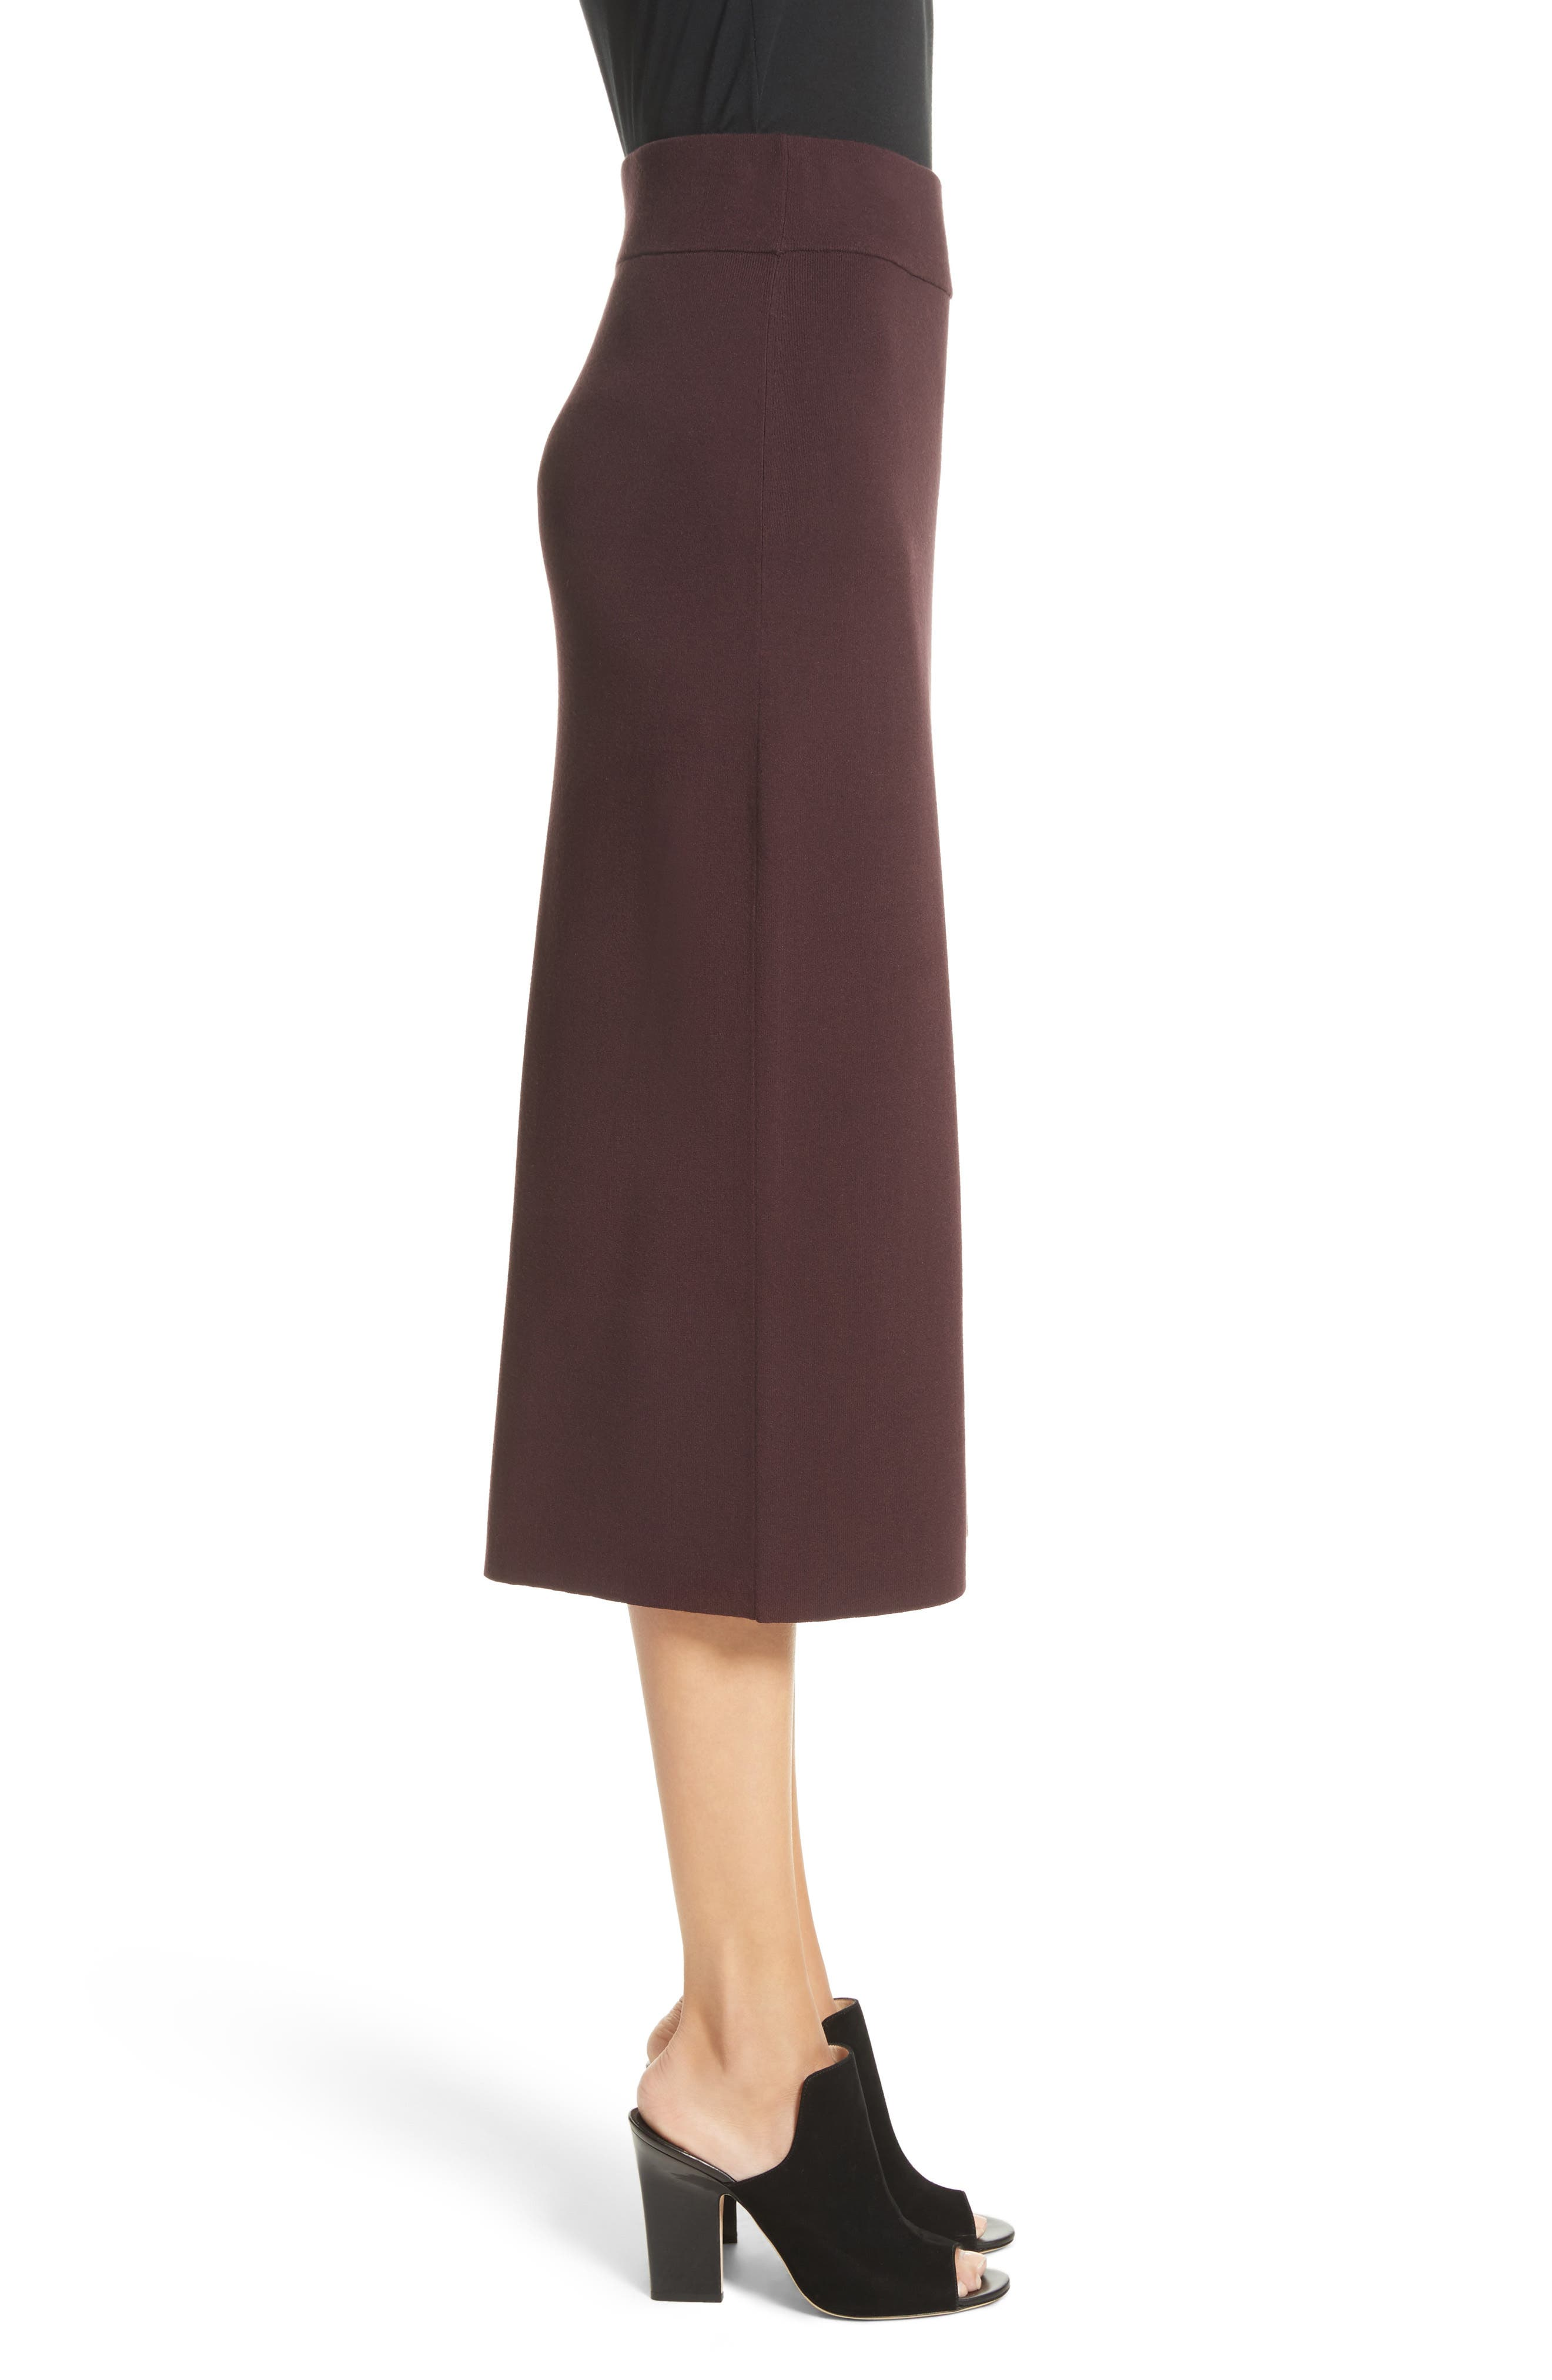 Smith Knit Pencil Skirt,                             Alternate thumbnail 4, color,                             Raisin